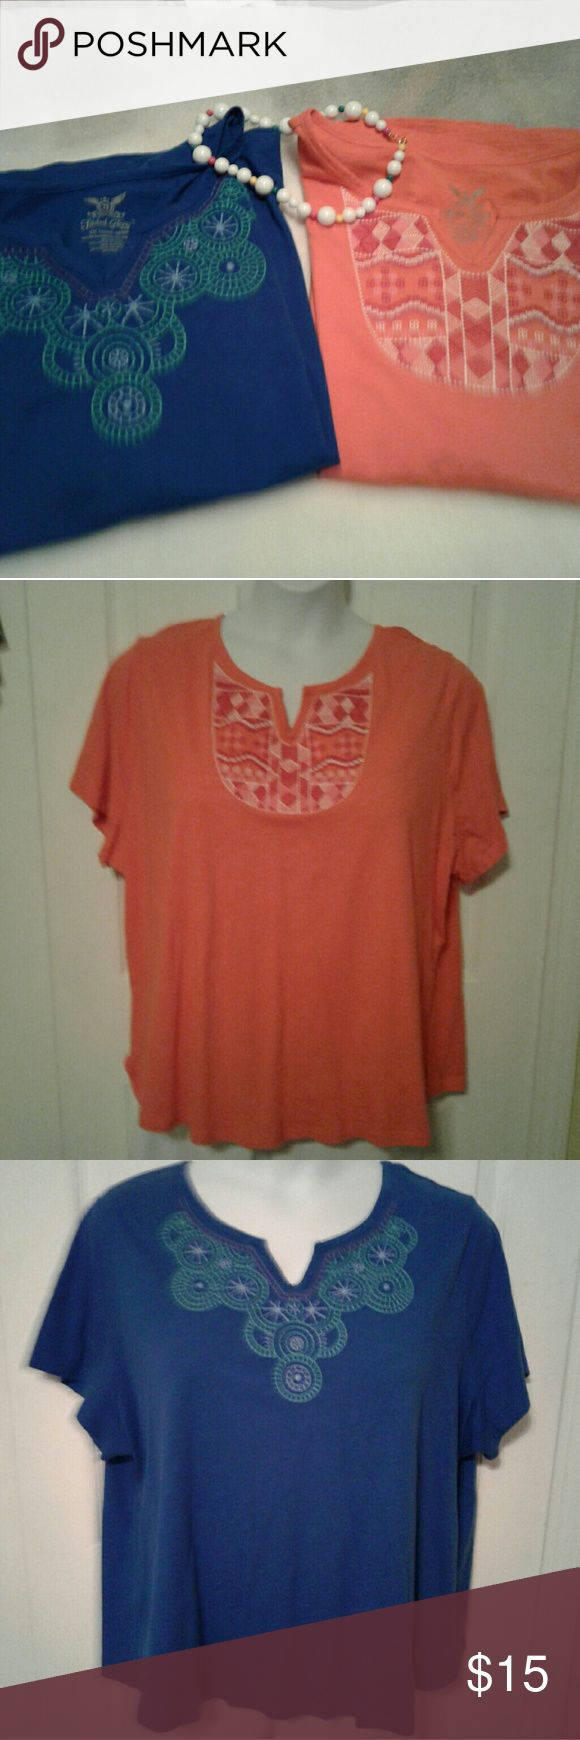 Bundle of nice  short sleeve  t's 1 orange short sleeve top, V cut out neckline,  embroidered designed front in reds, pinks,white. 100% cotton, good condition.  SIZE: 4X BY:  Faded Glory  1 blue short sleeve top with a v cutout neckline, embroidered design front in greens,white, purple. 100 % cotton, good condition.  SIZE: 4X. BY:  FADED GLORY Faded Glory Tops Tees - Short Sleeve